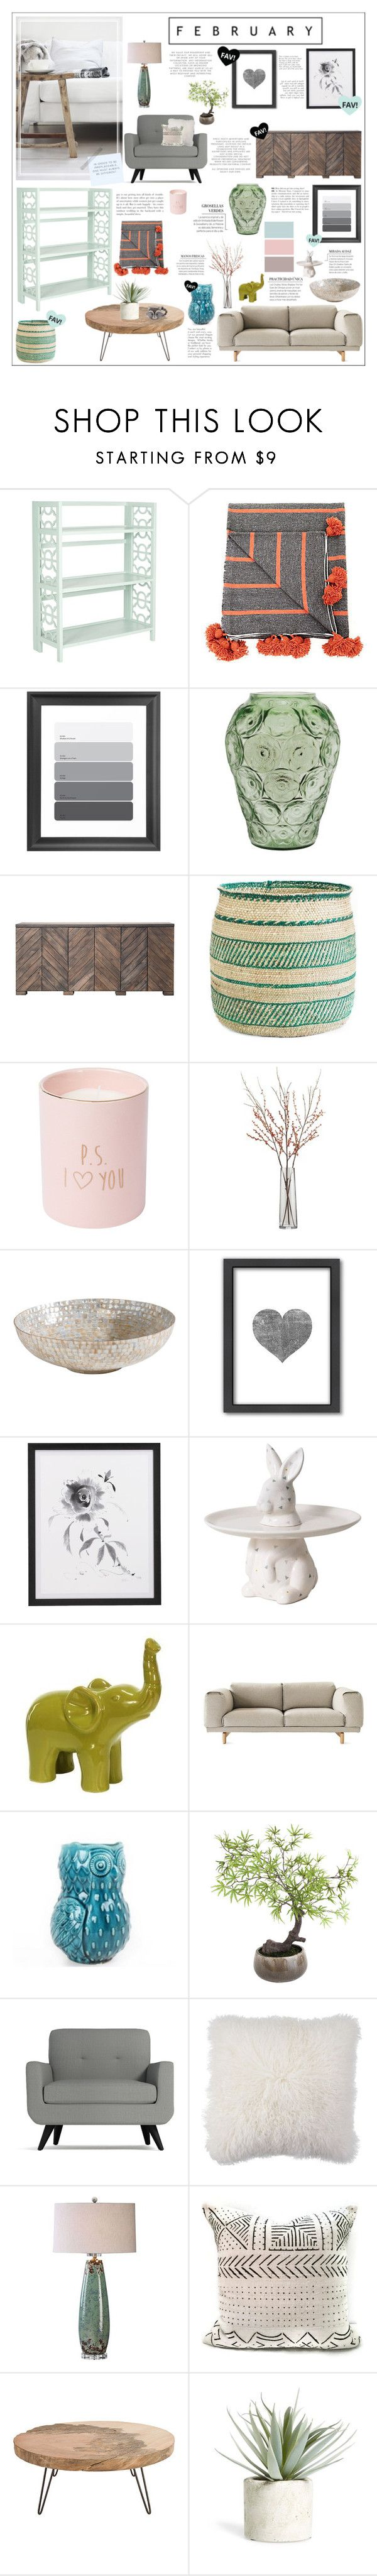 """Feburary"" by honey-beans-xo ❤ liked on Polyvore featuring interior, interiors, interior design, home, home decor, interior decorating, Dot & Bo, Lalique, Crate and Barrel and Ethan Allen"